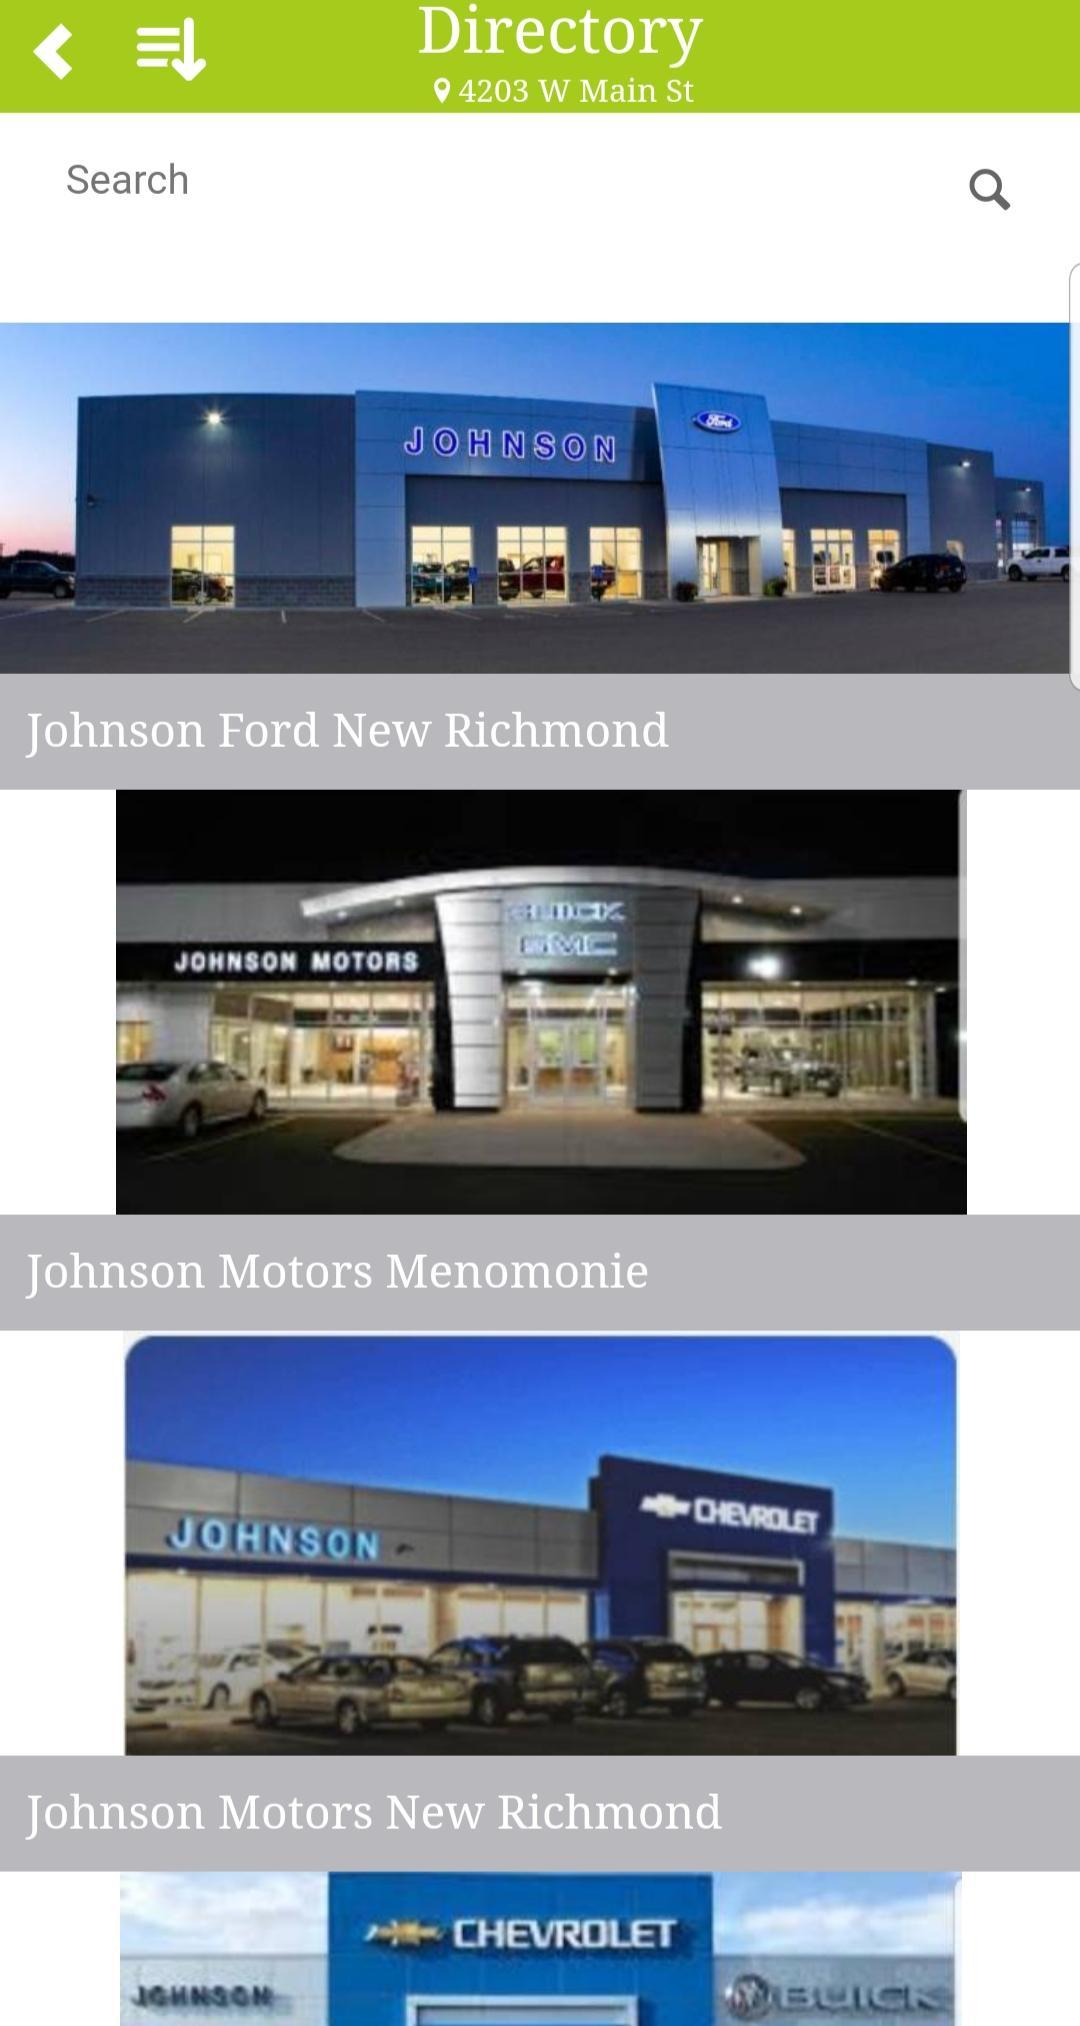 johnson motors mobile for android apk download apkpure com